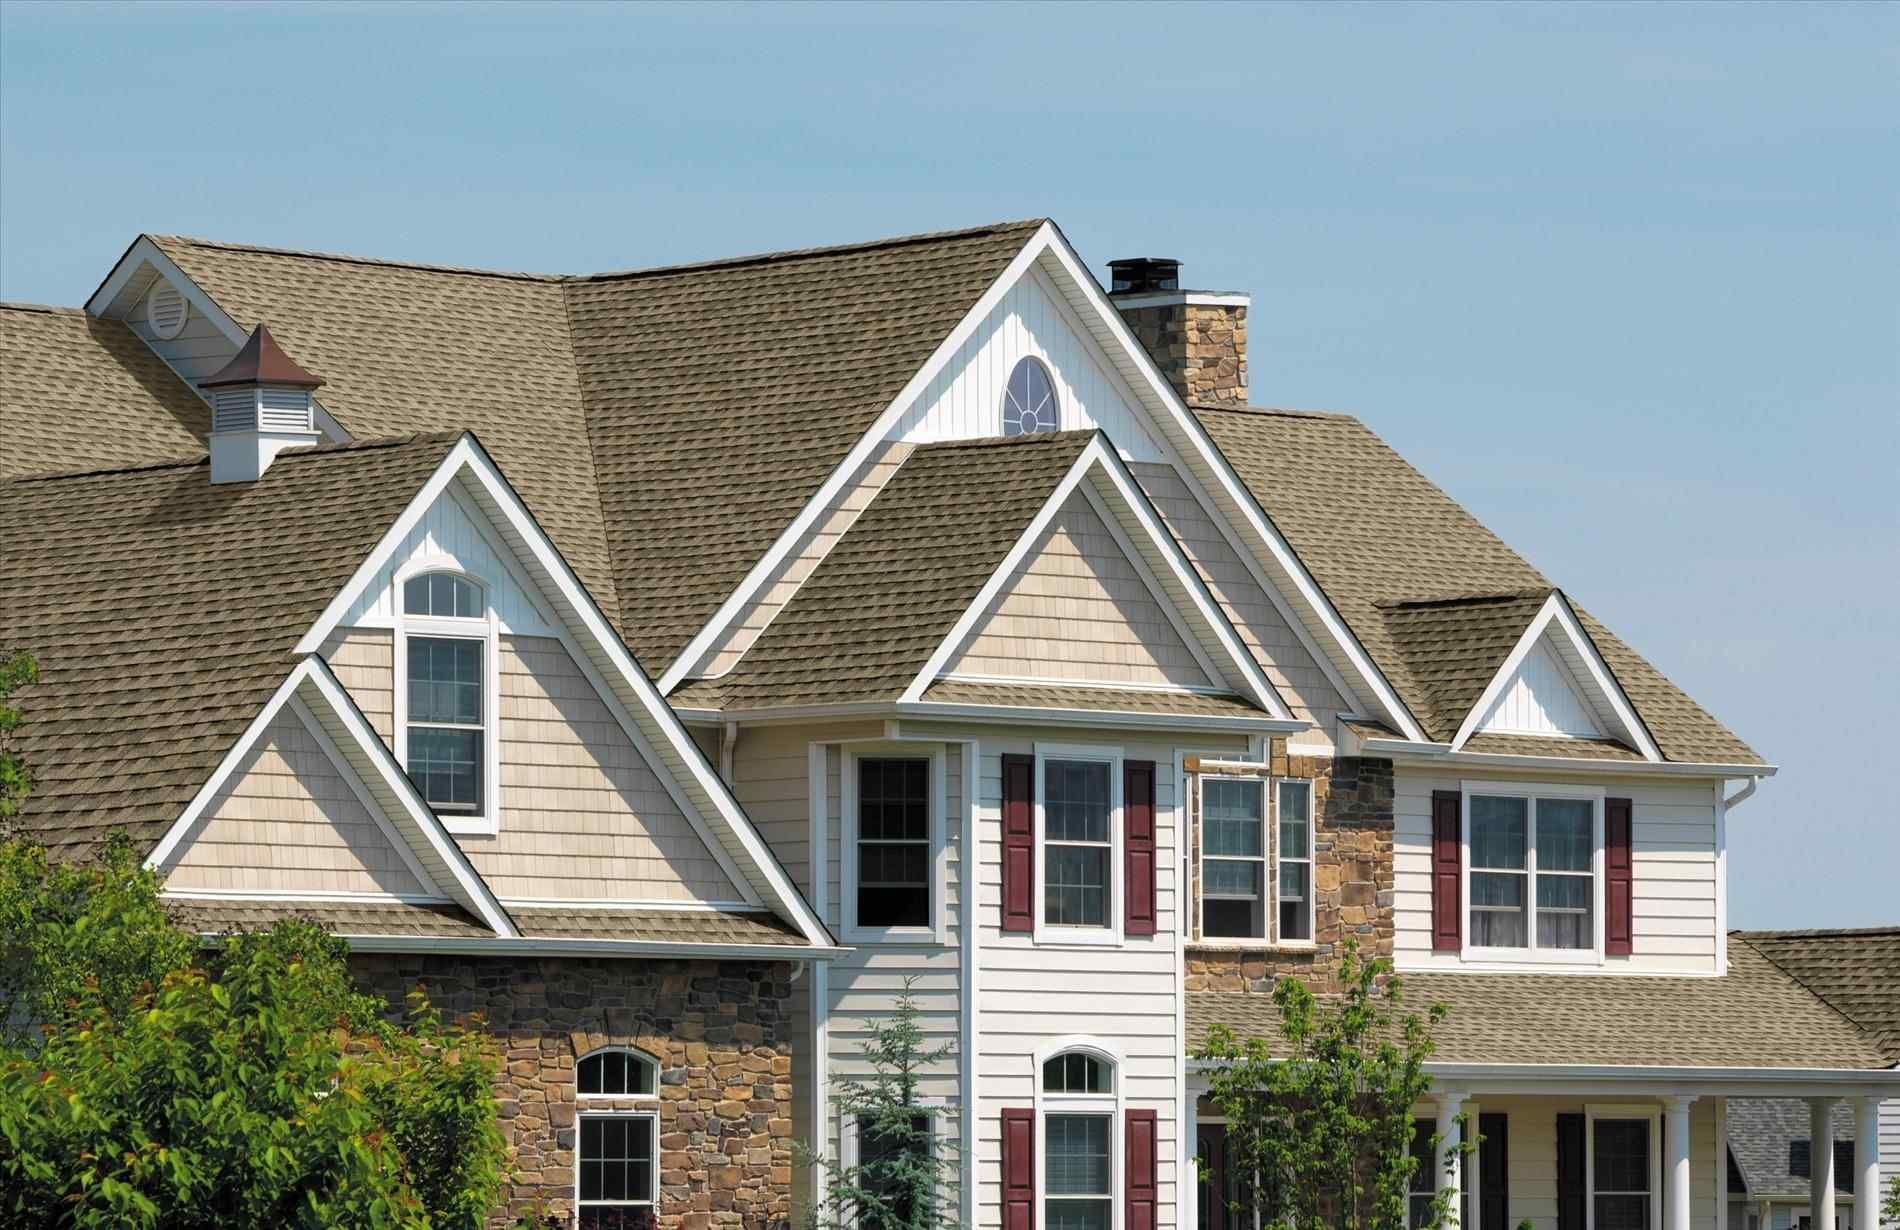 Best Hickory Roof Shingles Roof Shingles Roofing Shingling 400 x 300